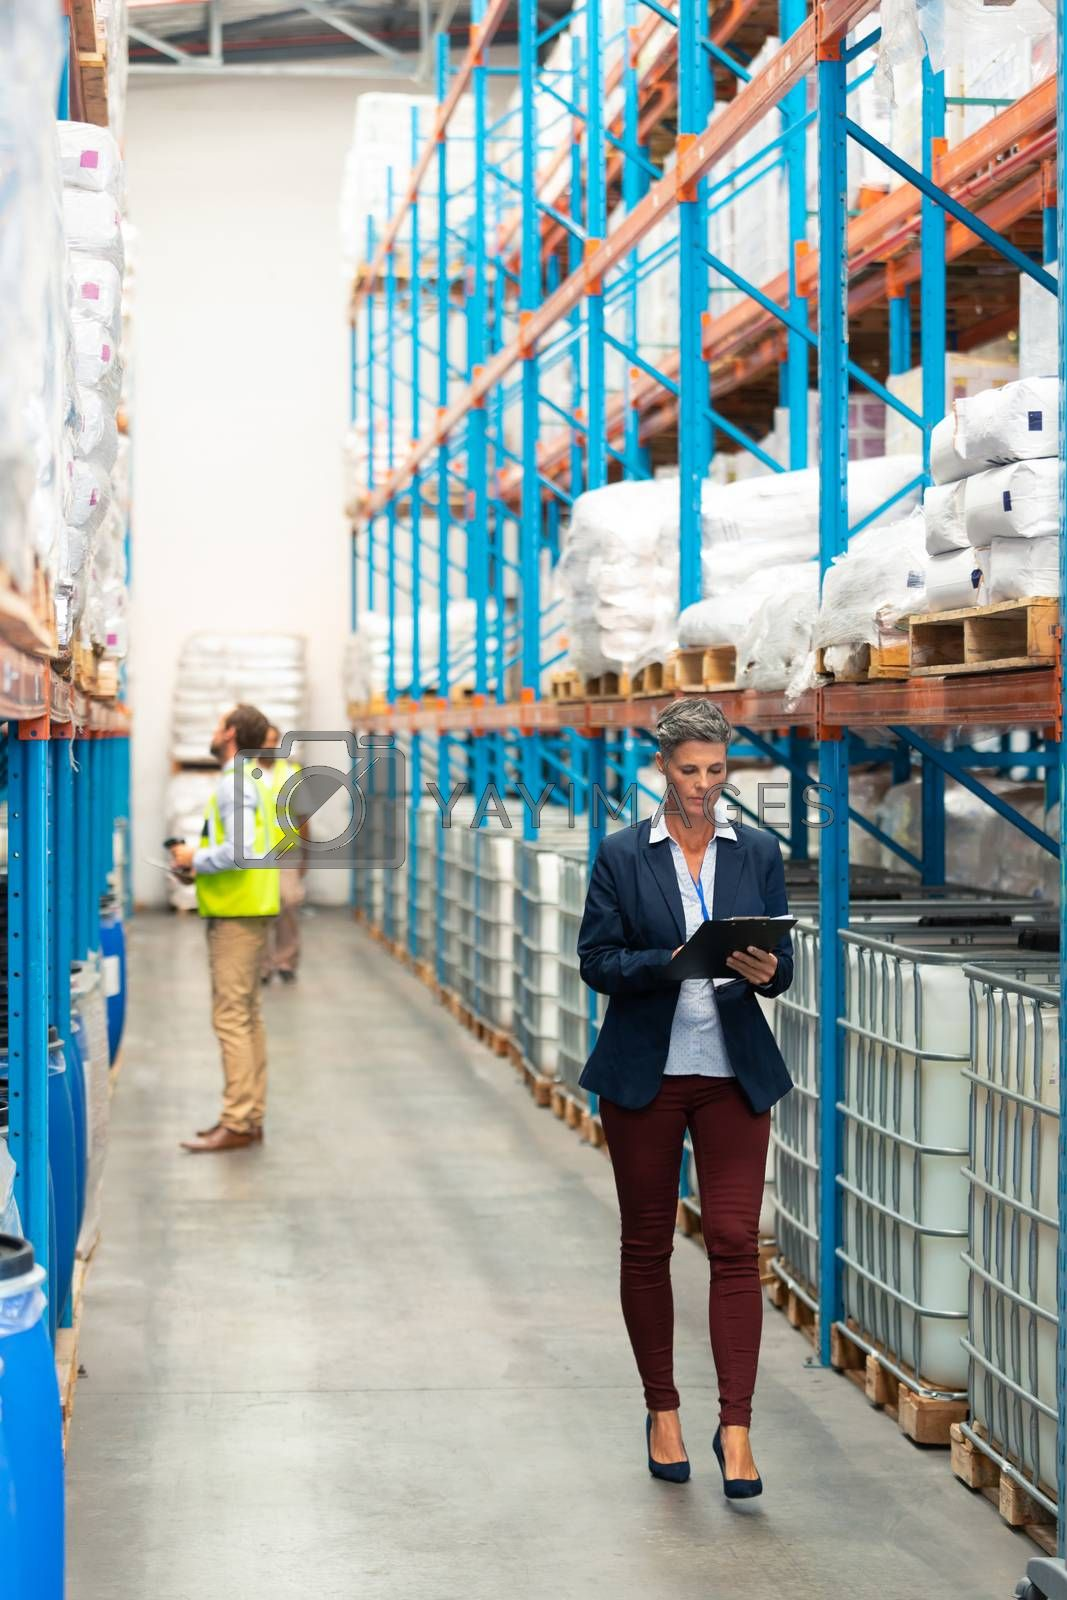 Front view of pretty Caucasian female manager working on clipboard while walking in warehouse. Diverse male staff work behind her. This is a freight transportation and distribution warehouse. Industrial and industrial workers concept